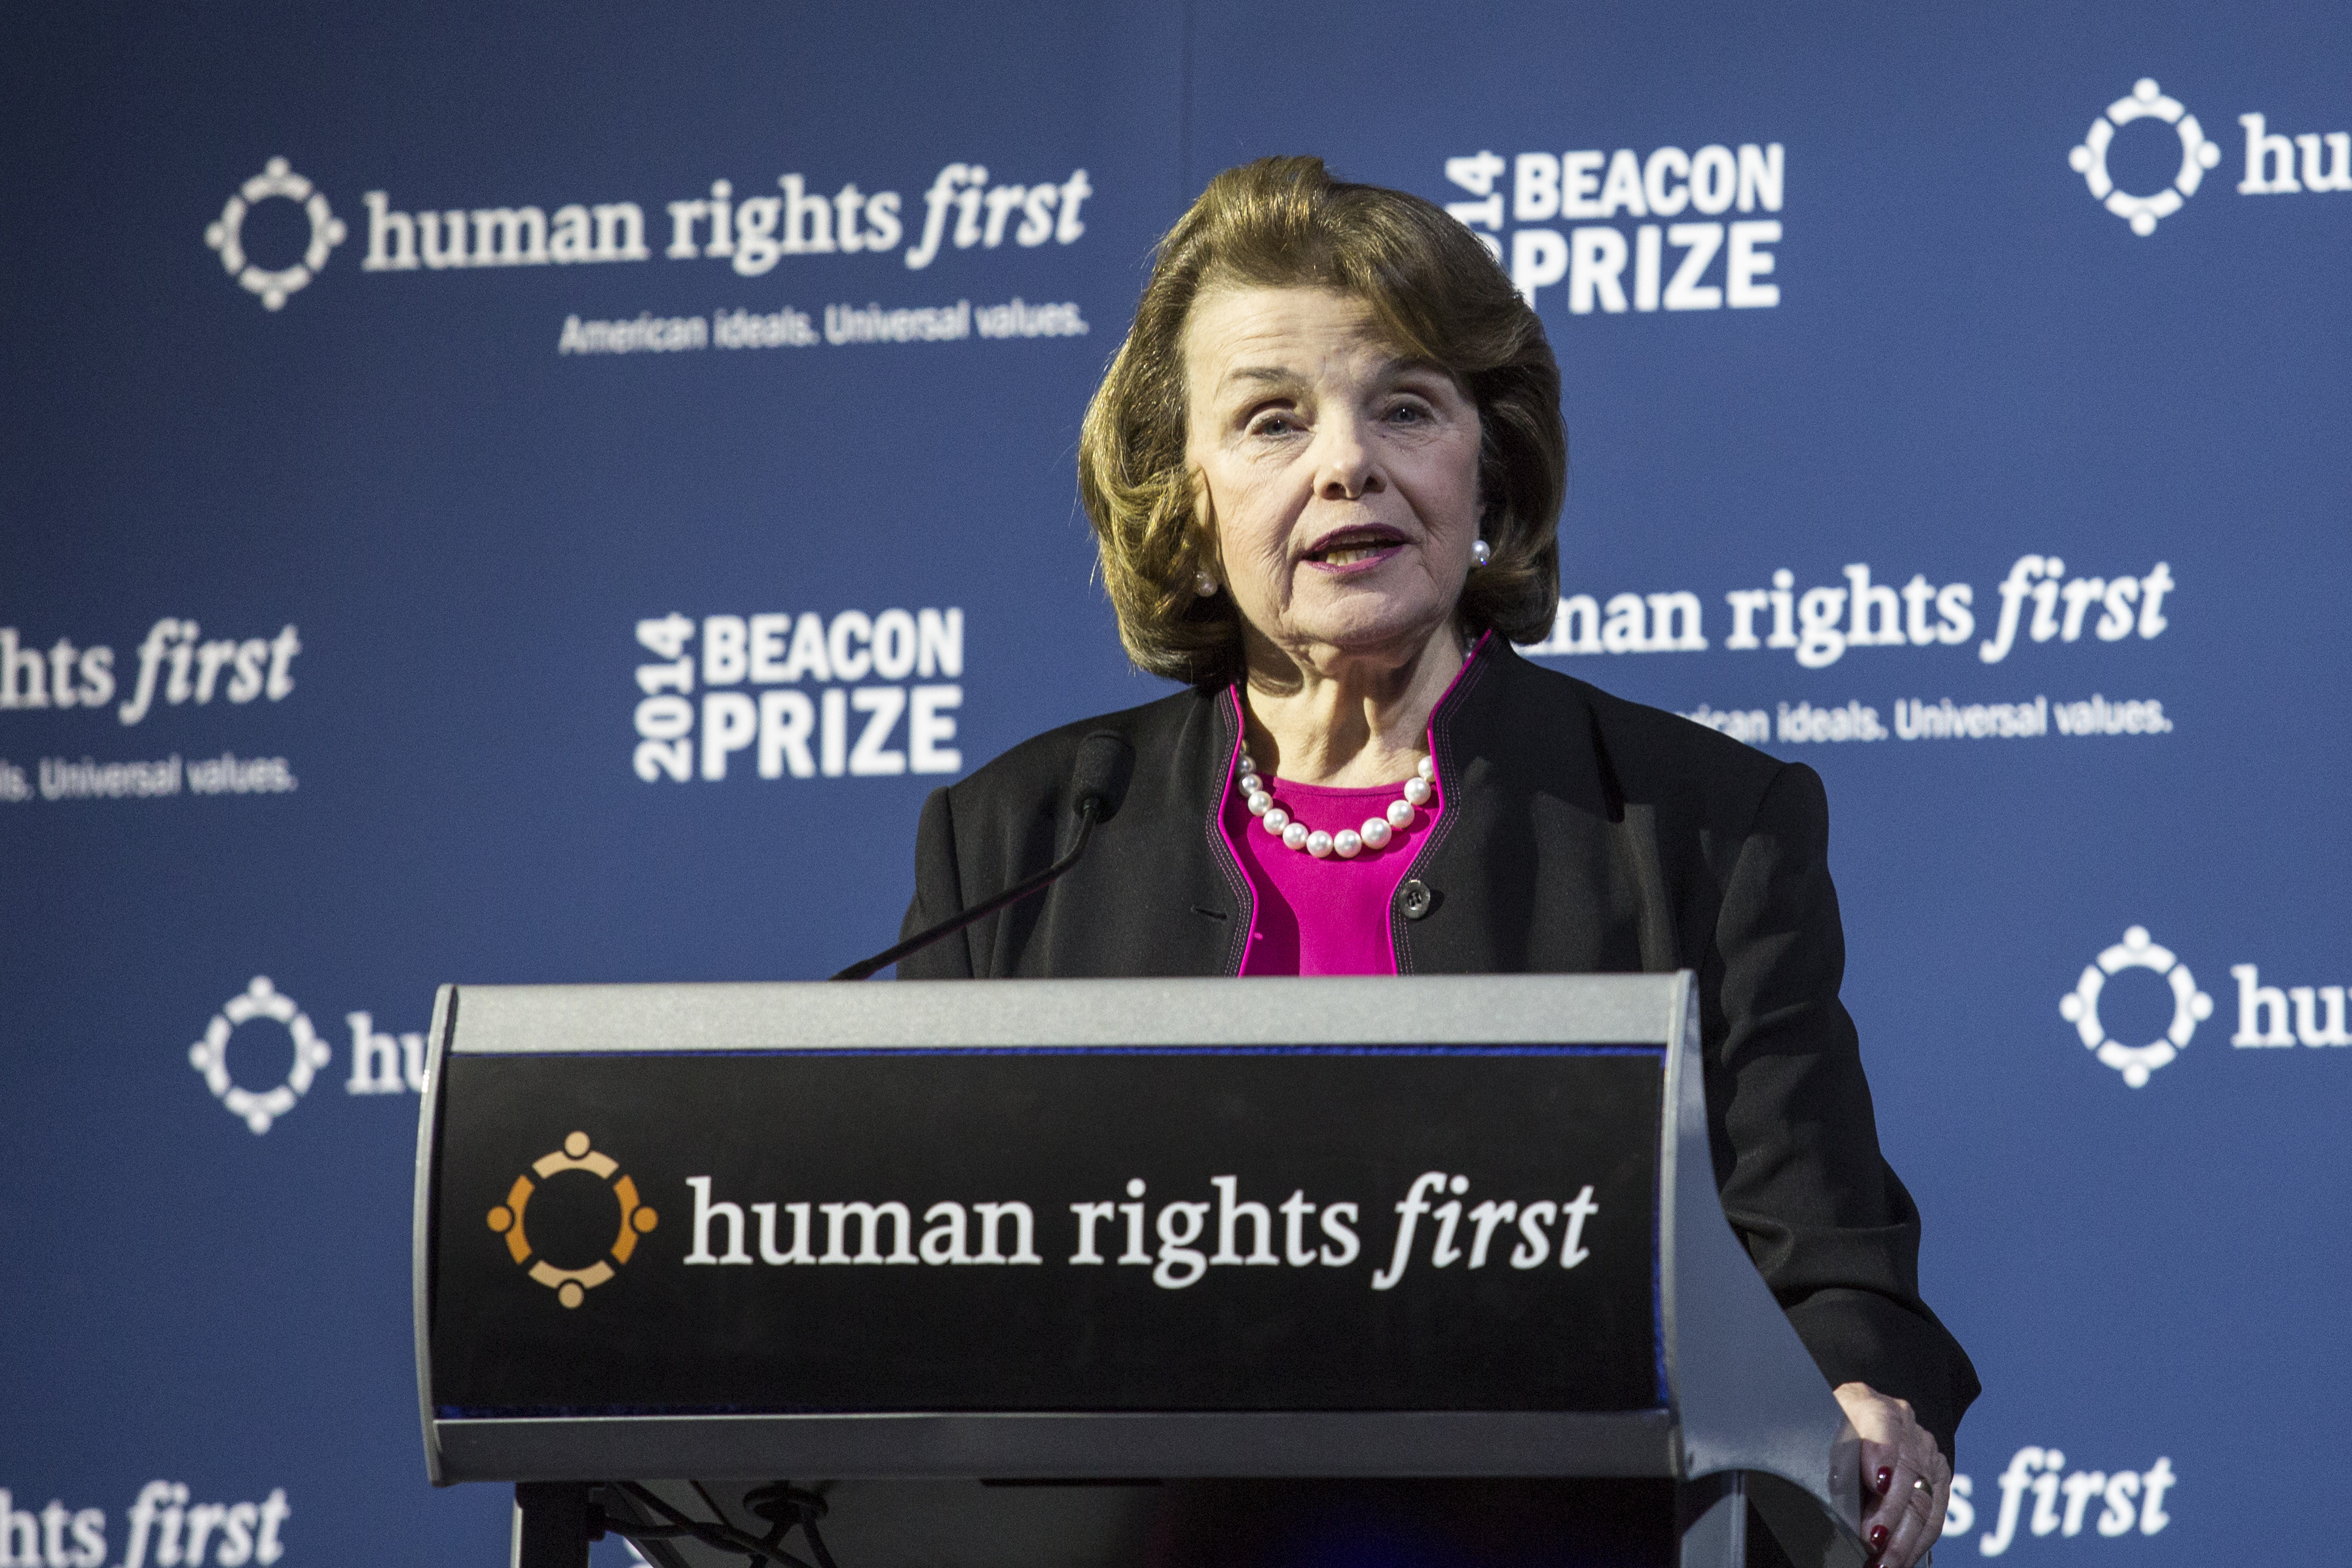 Sen. Dianne Feinstein (D-CA) delivers remarks about the Senate Intelligence Committee's report on the Central Intelligence Agency's detention and interrogation program during a gala event hosted by the  Human Rights First organization, at the Newseum, December 10, 2014 in Washington, D.C.